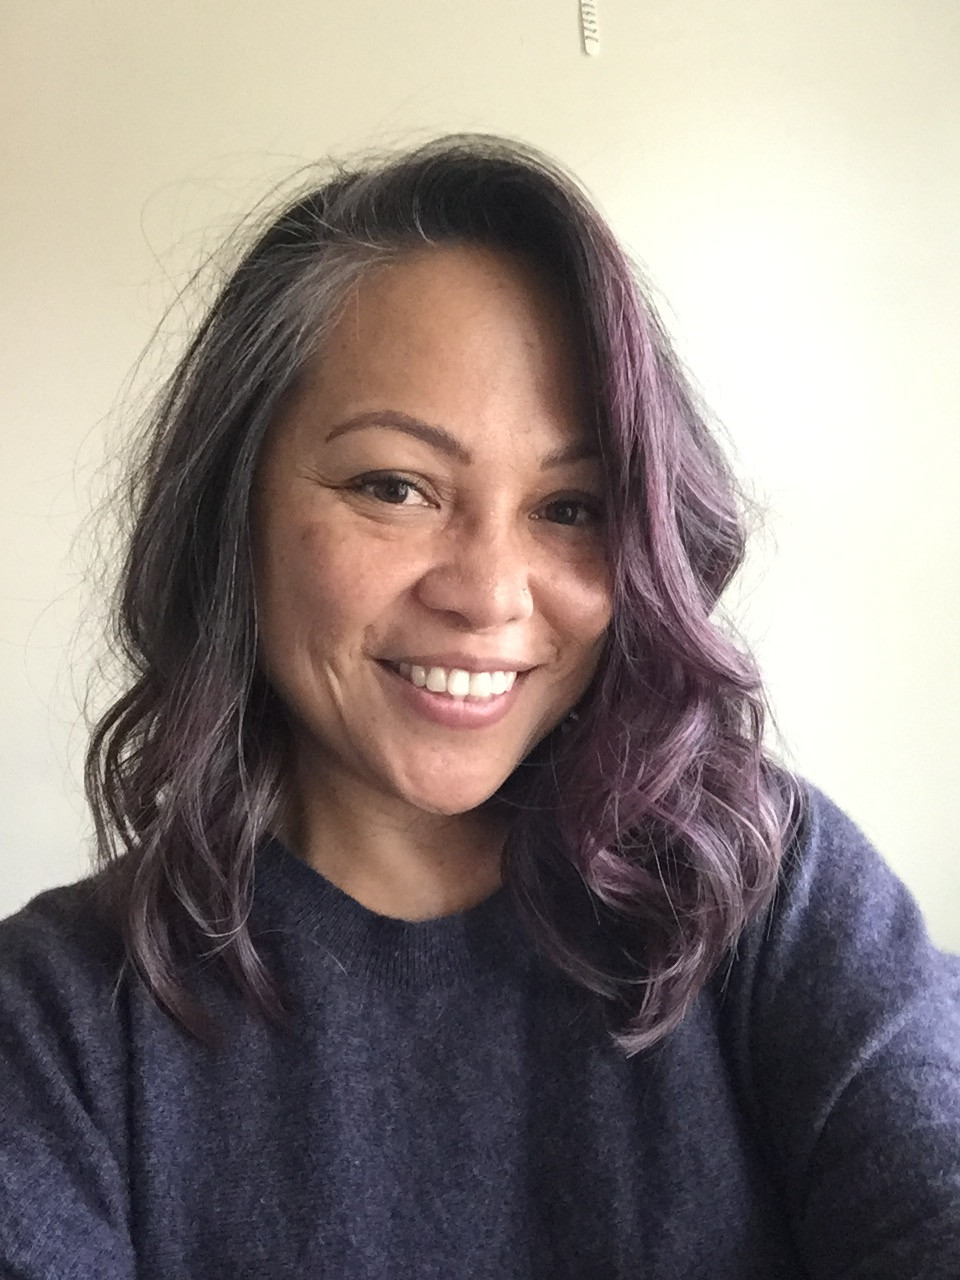 Yale is wearing a dark gray shirt with purple highlights in her hair